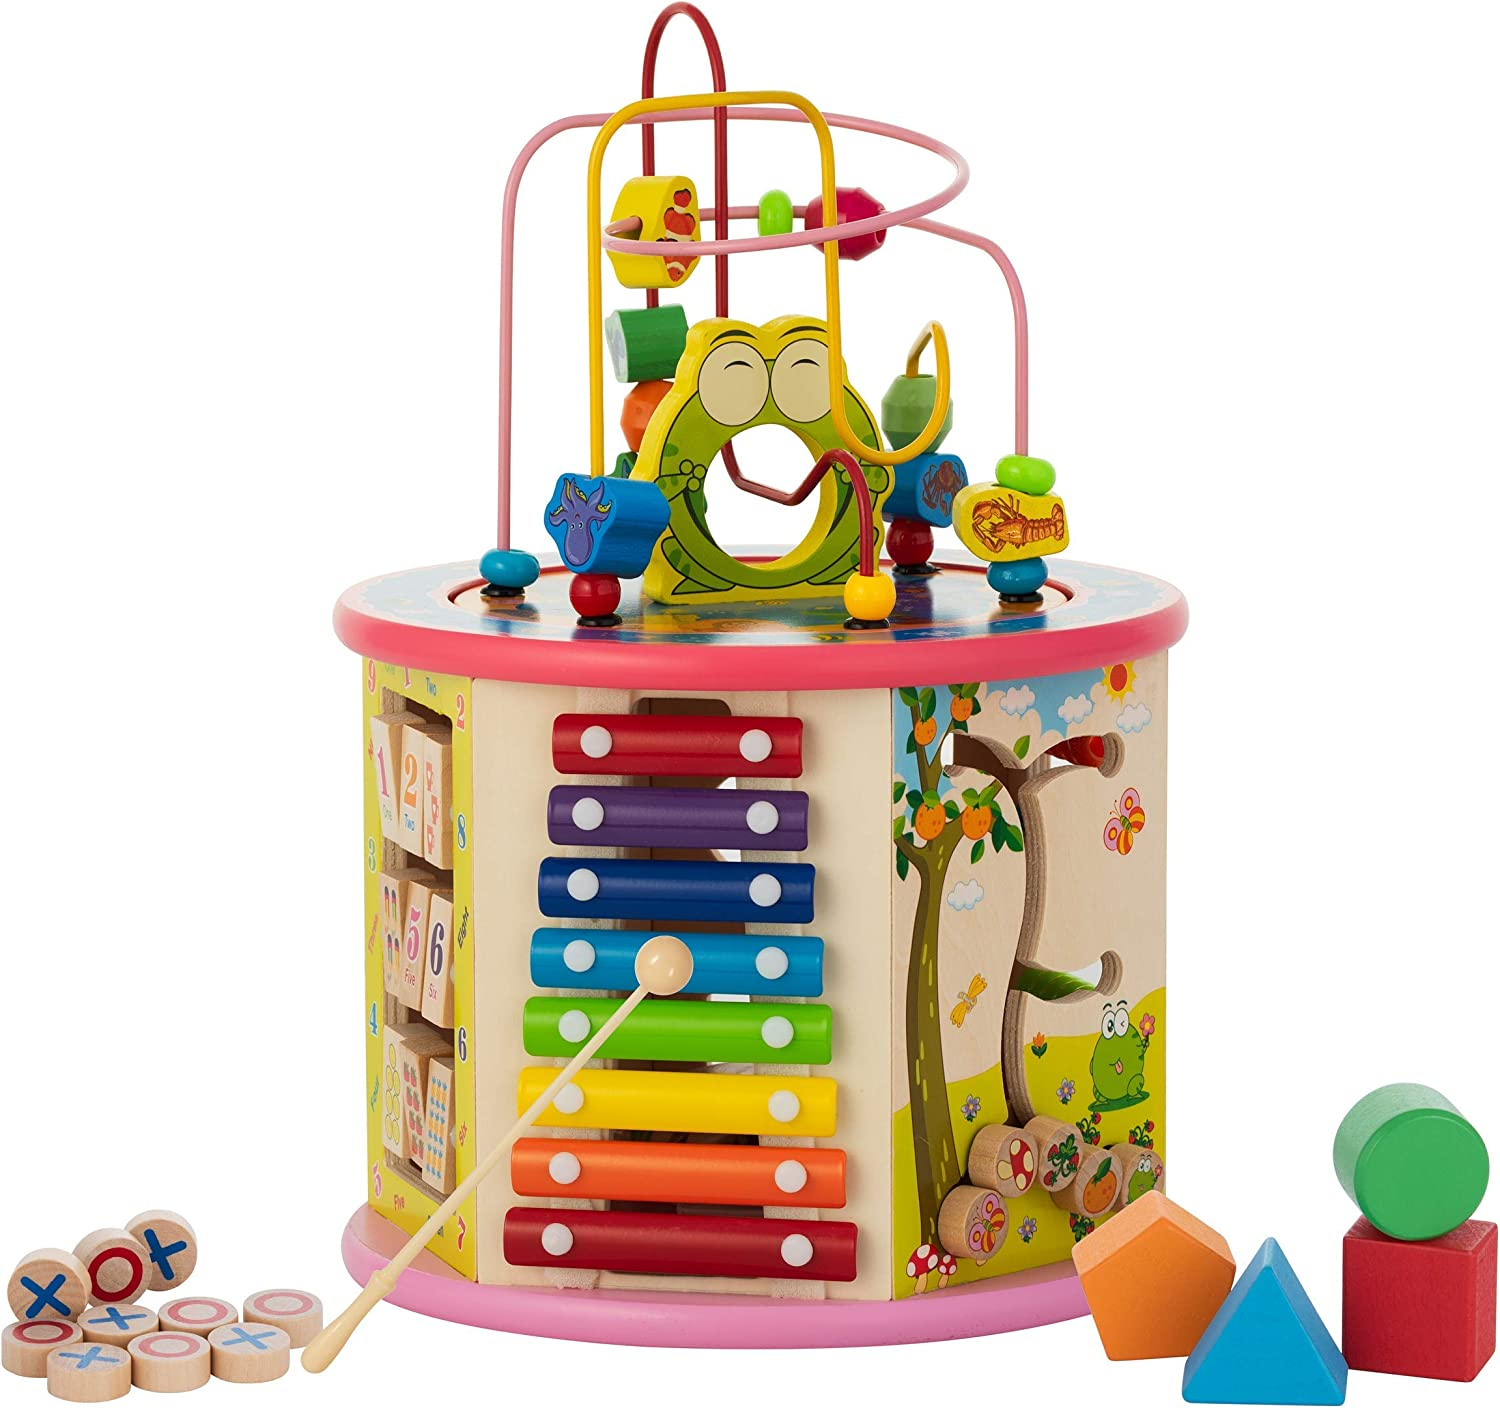 Activity Cube Wooden Center 8-in-1 Educational Toys Best Learning Toys for Boys or Girls {Medium Size}(Pink)